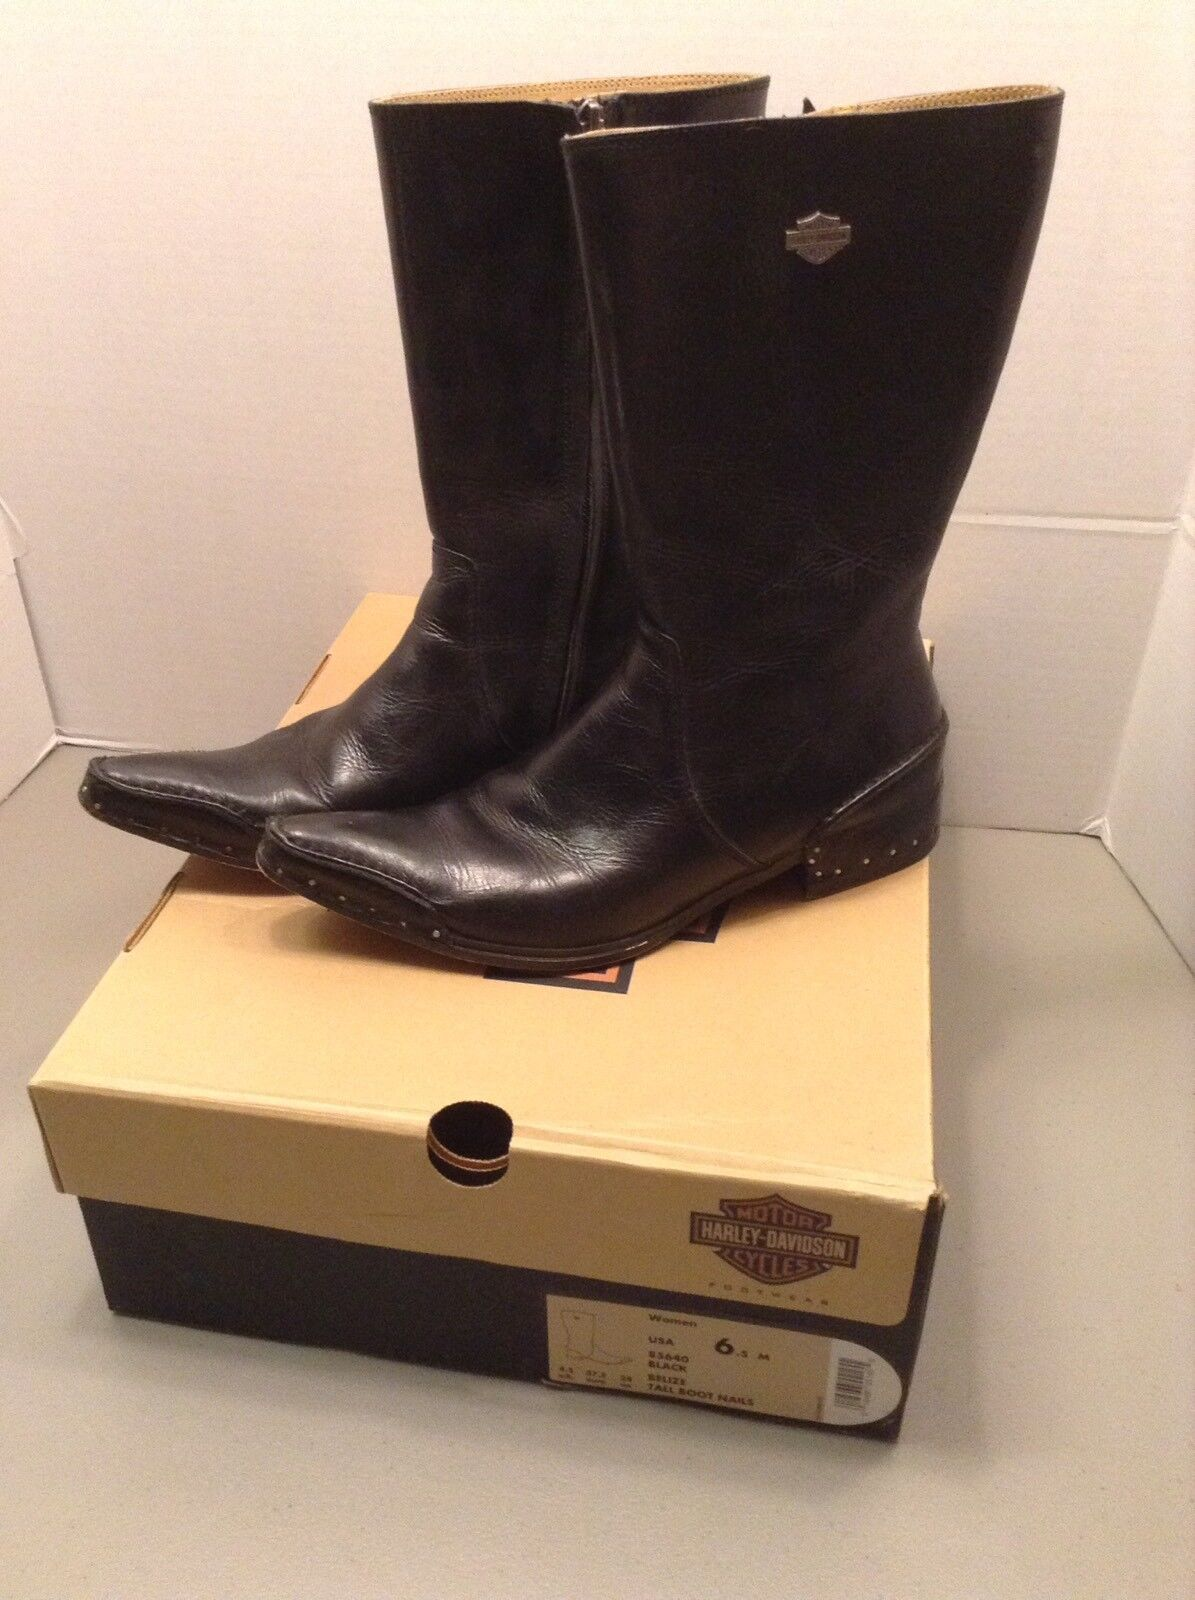 Women's Harley Davidson Black Leather Tall Boots Belize Nails 85640 Size 6.5 M